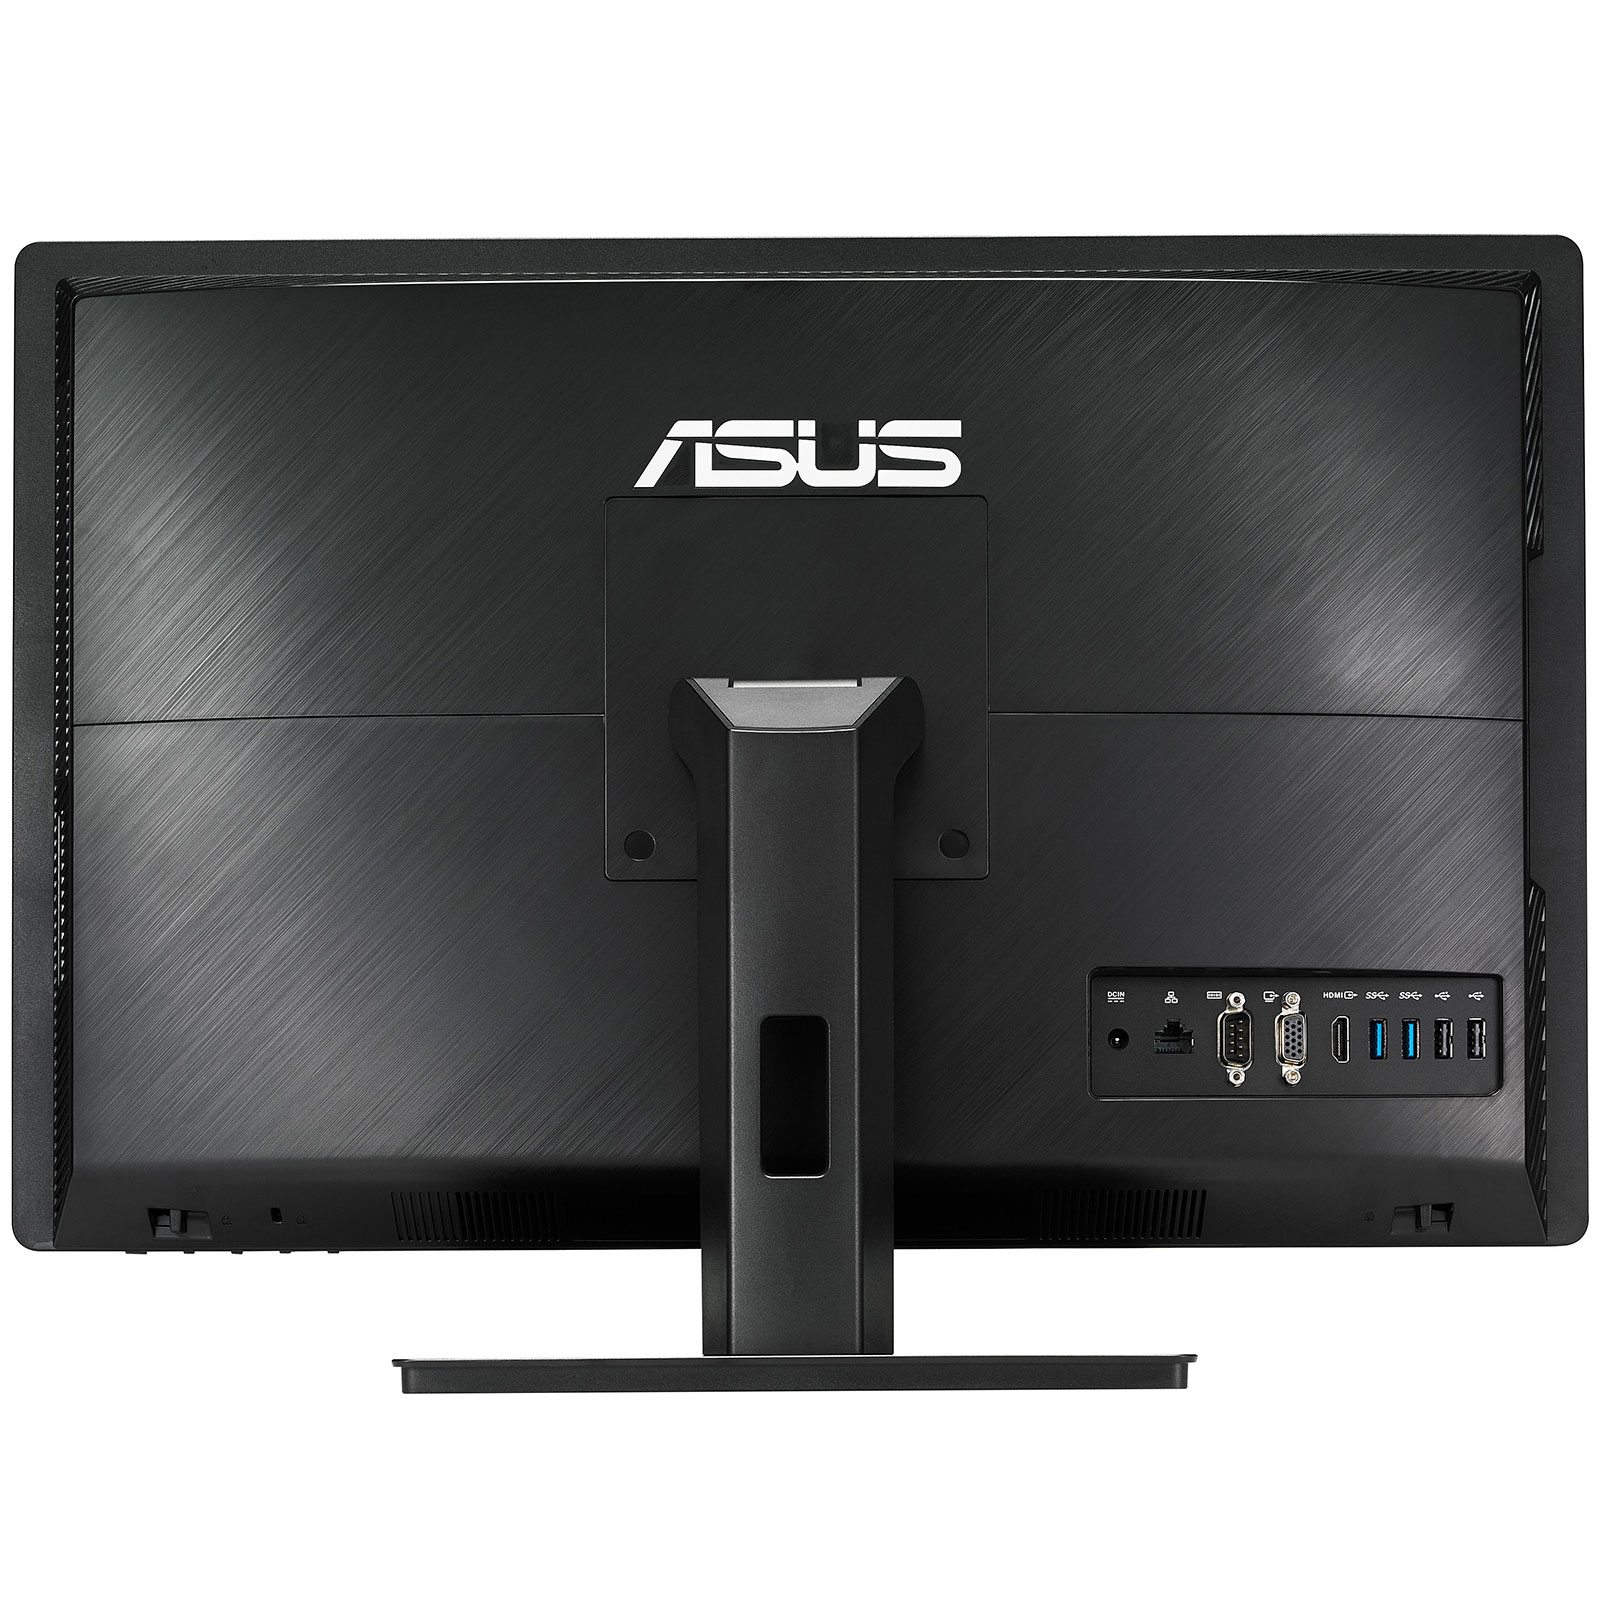 asus all in one pc a4320 bb021x pc de bureau asus sur ldlc. Black Bedroom Furniture Sets. Home Design Ideas